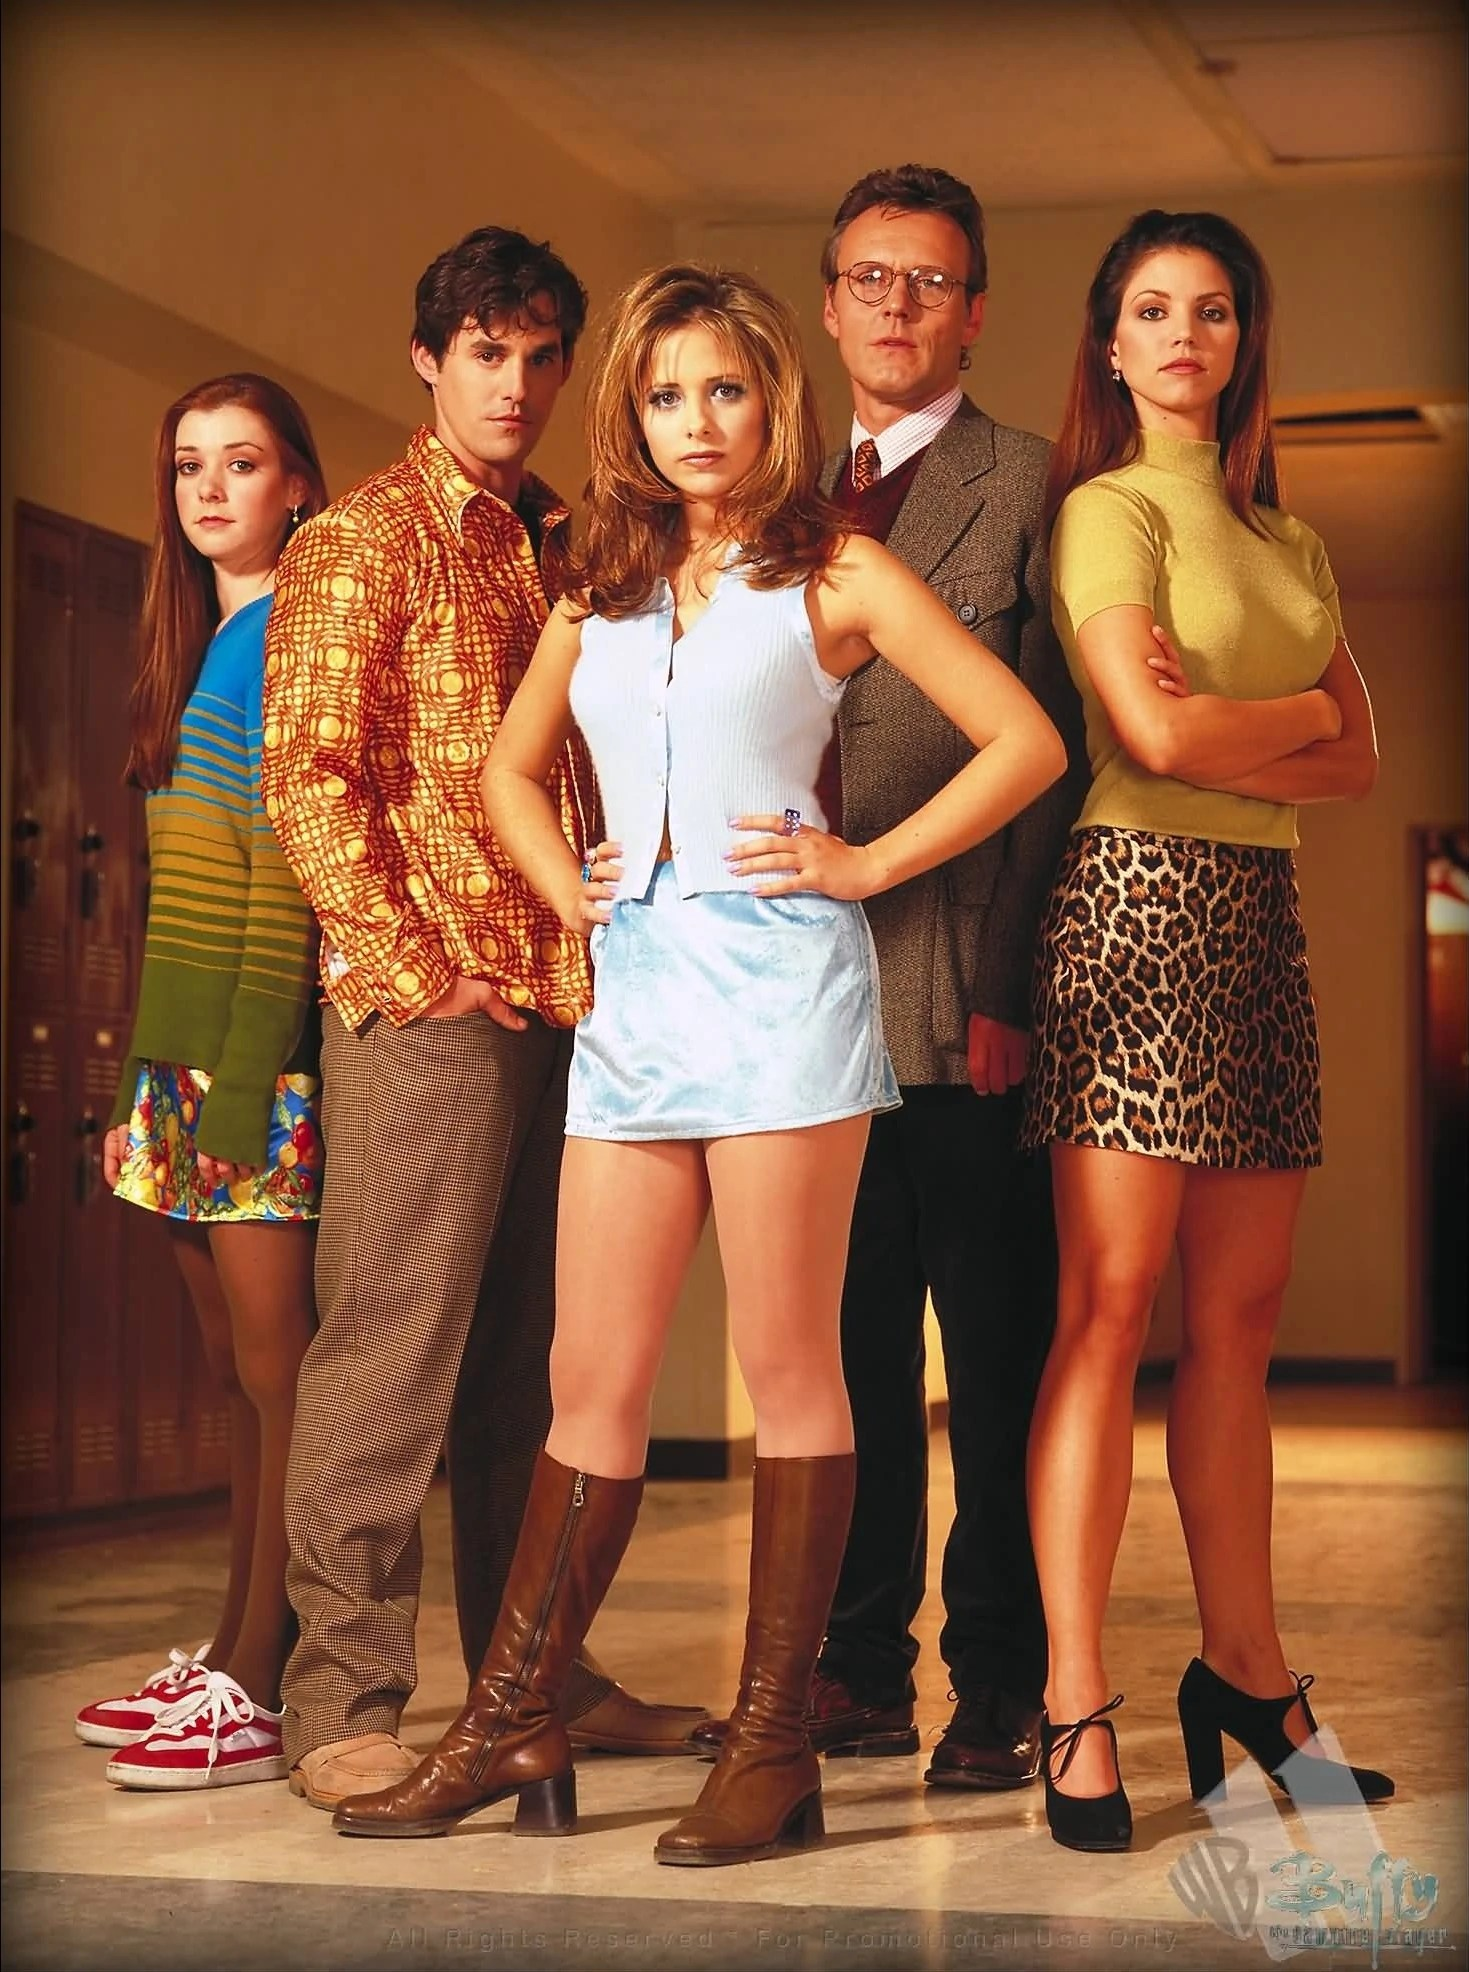 Buffy Summers and friends